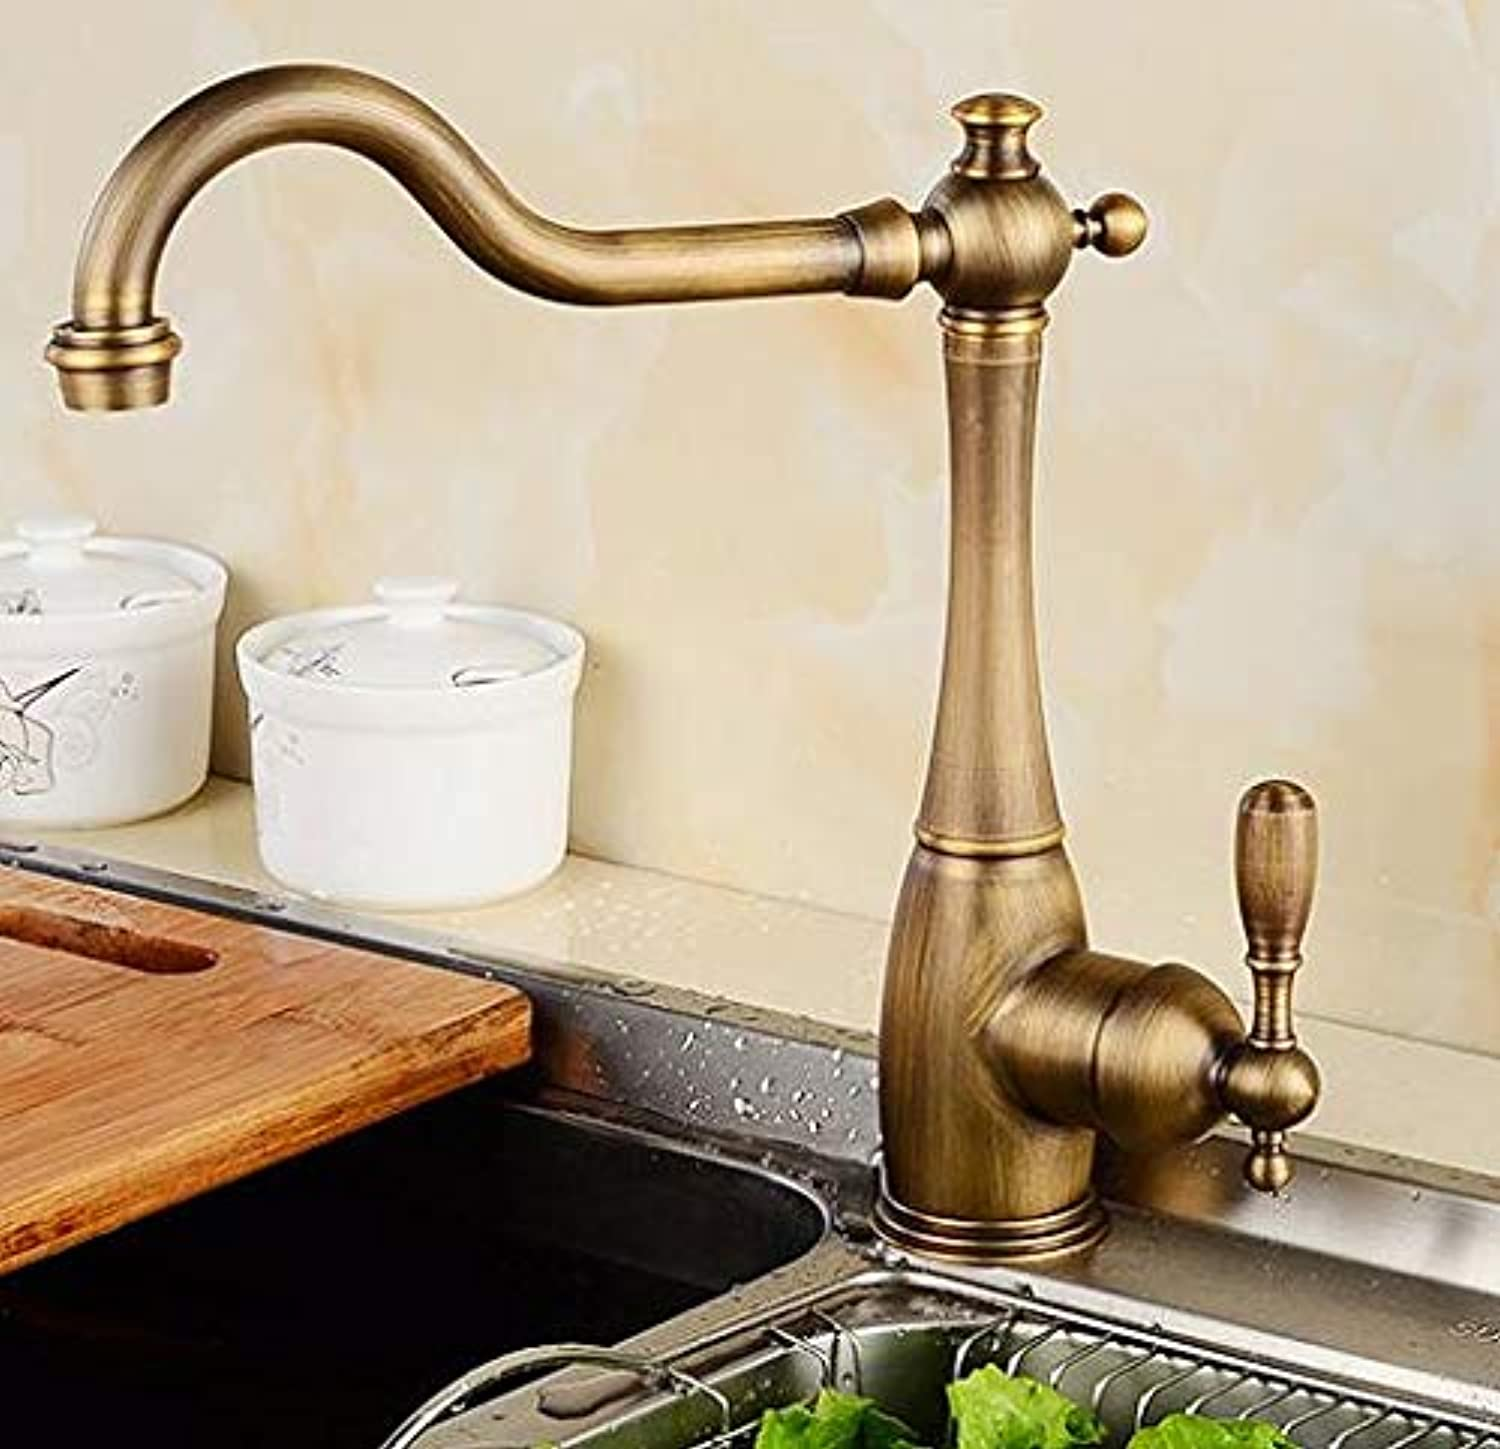 CZOOR New Arrival Brass gold Finished 360 Degree redating hot and Cold no Lead Safe Kitchen Sink Faucet,Bronze